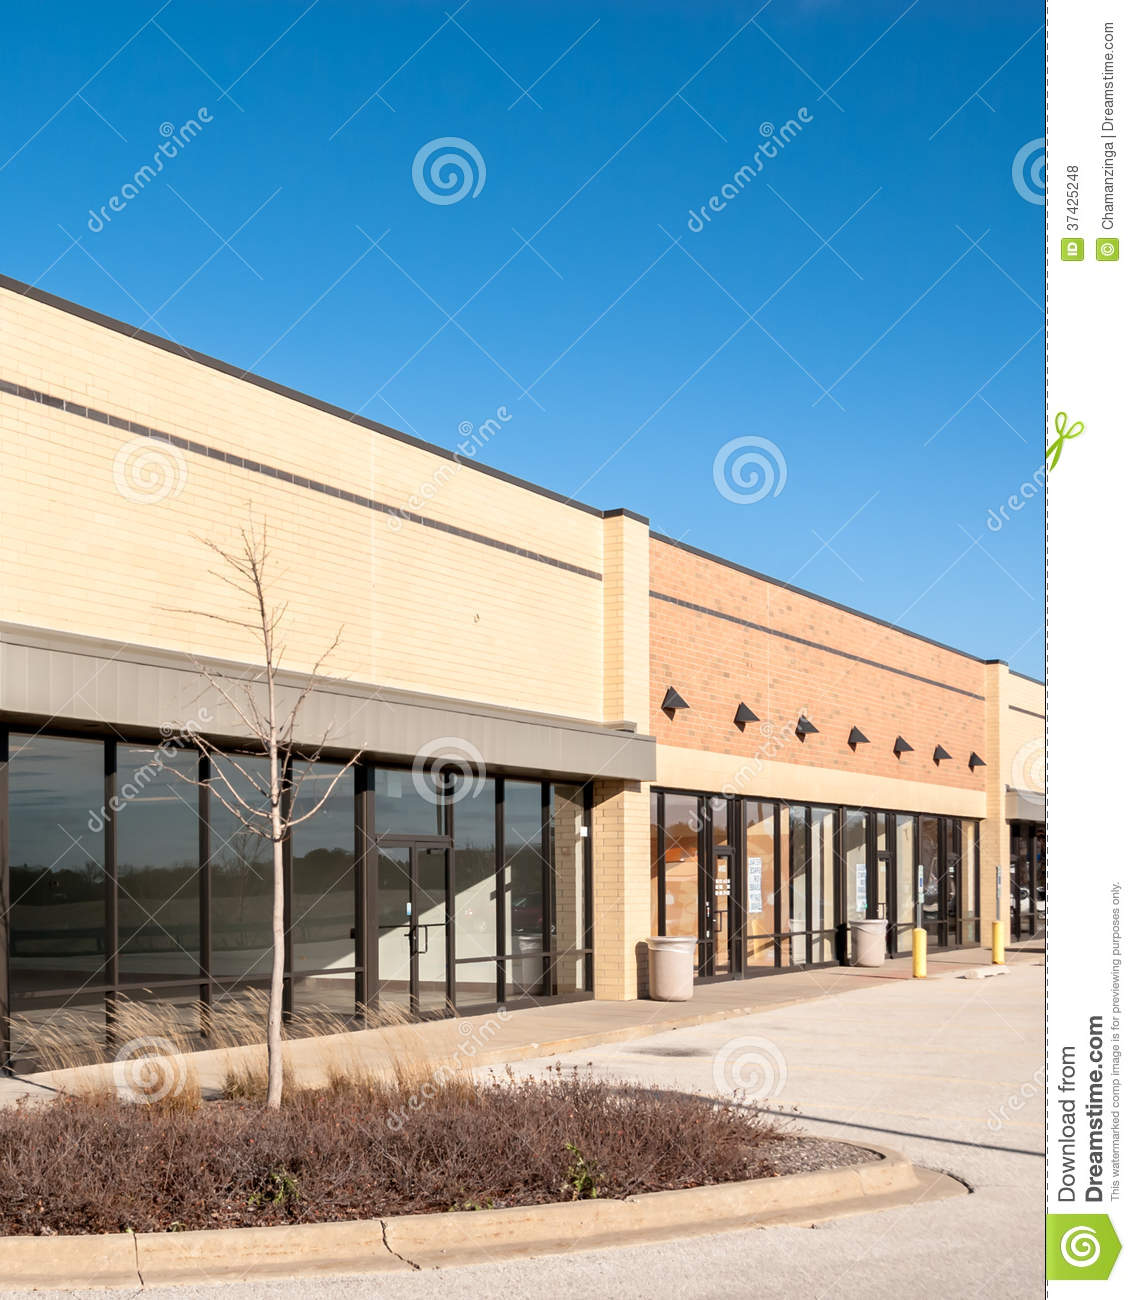 Retail Store Front: Commercial, Retail And Office Building Royalty Free Stock